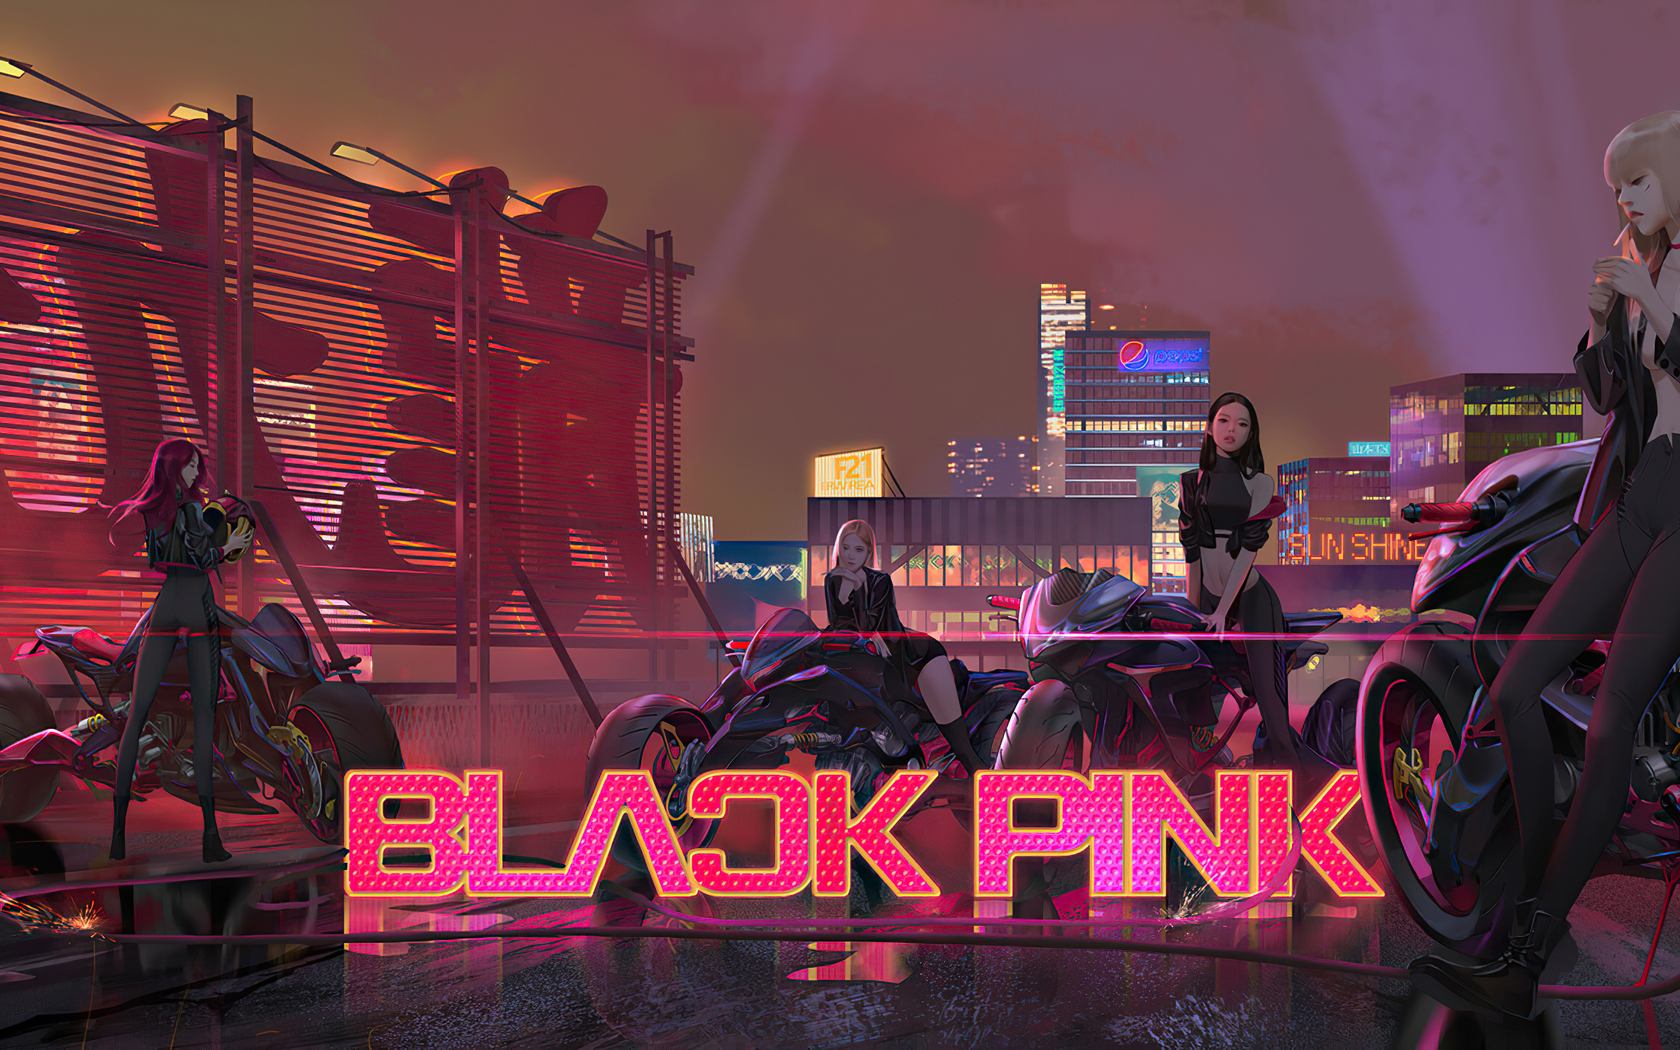 1680x1050 Blackpink 4k 1680x1050 Resolution Hd 4k Wallpapers Images Backgrounds Photos And Pictures